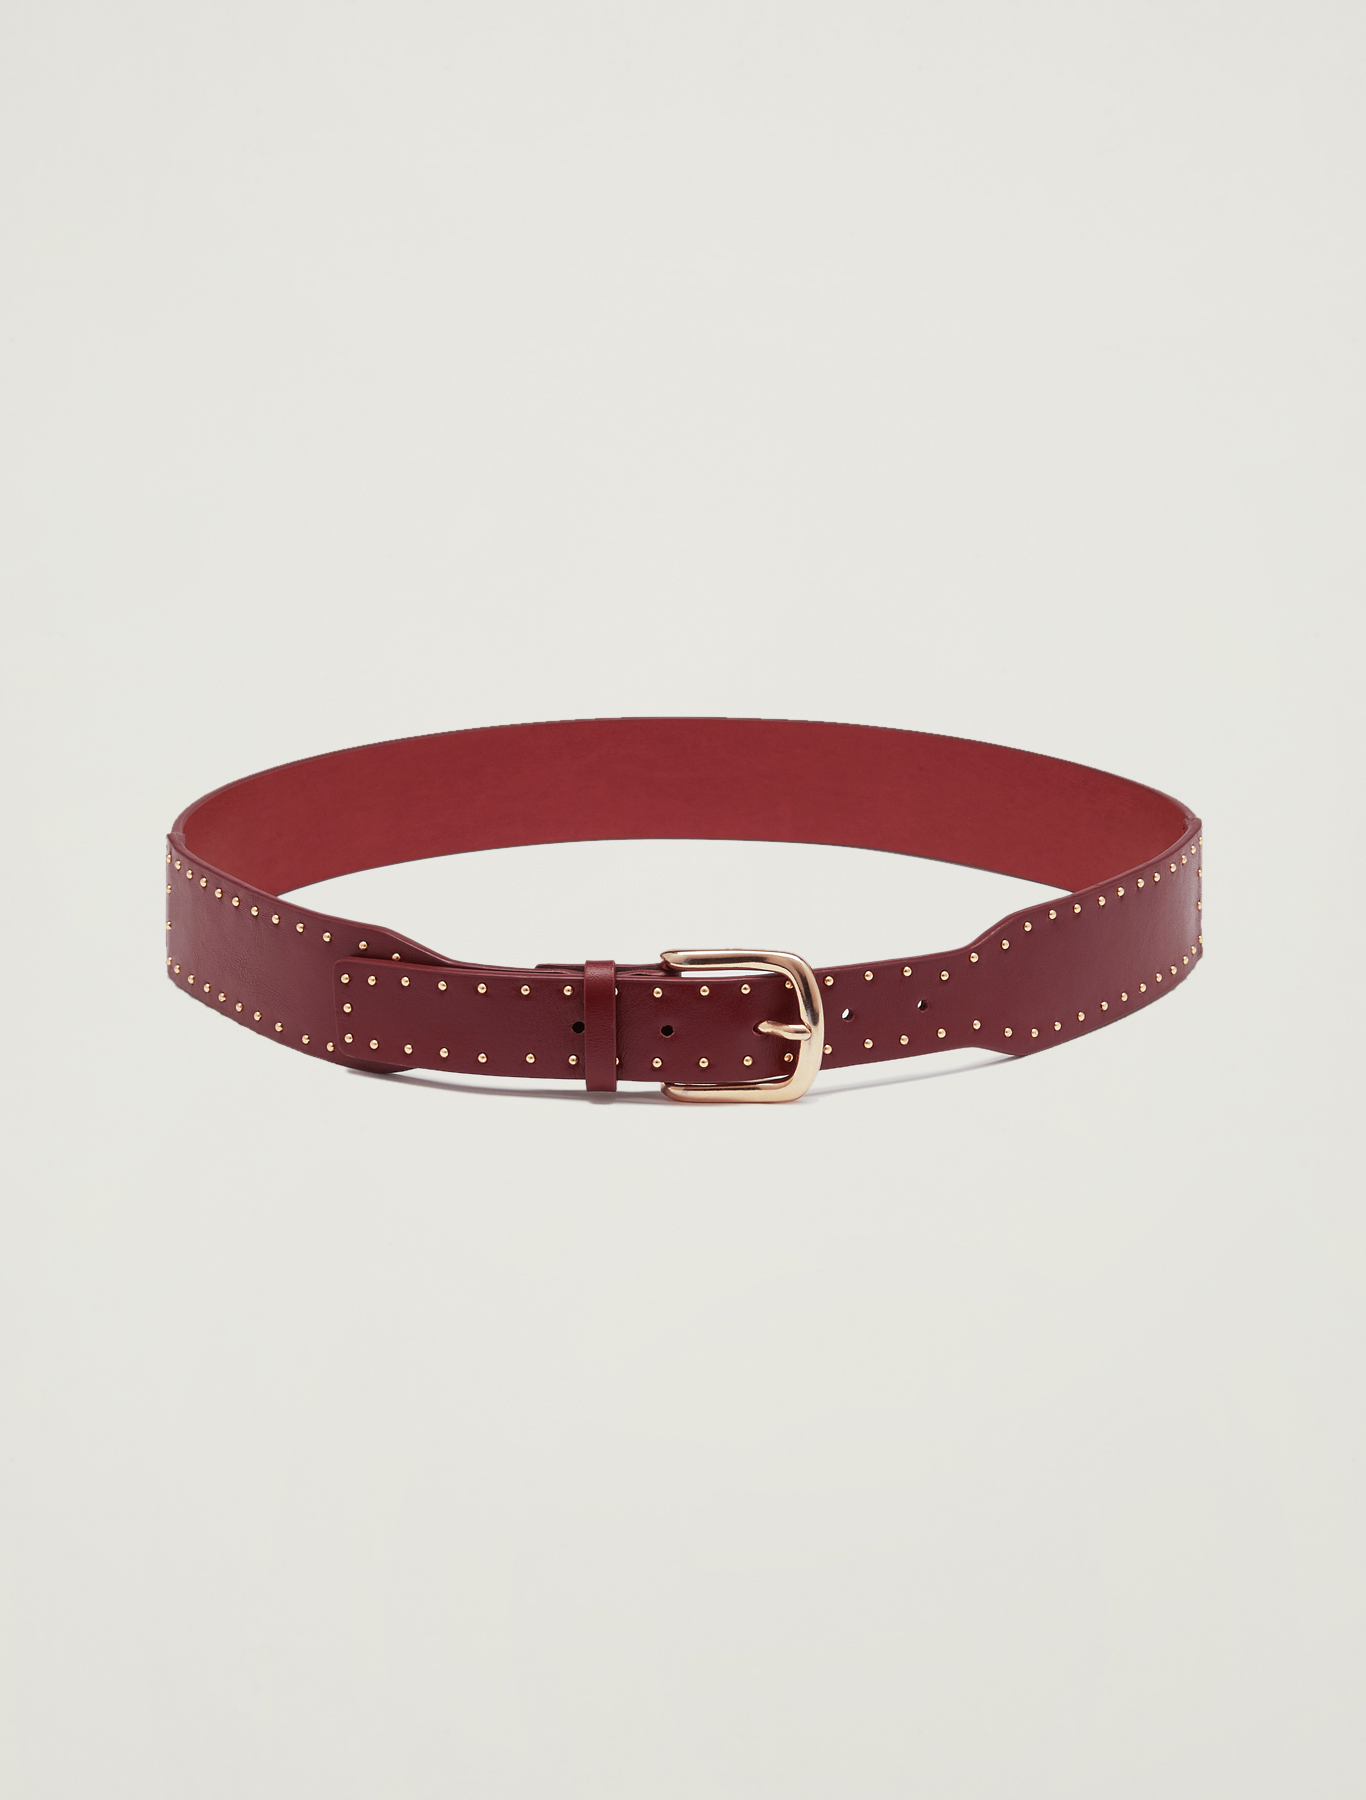 Belt with micro studs - red - pennyblack